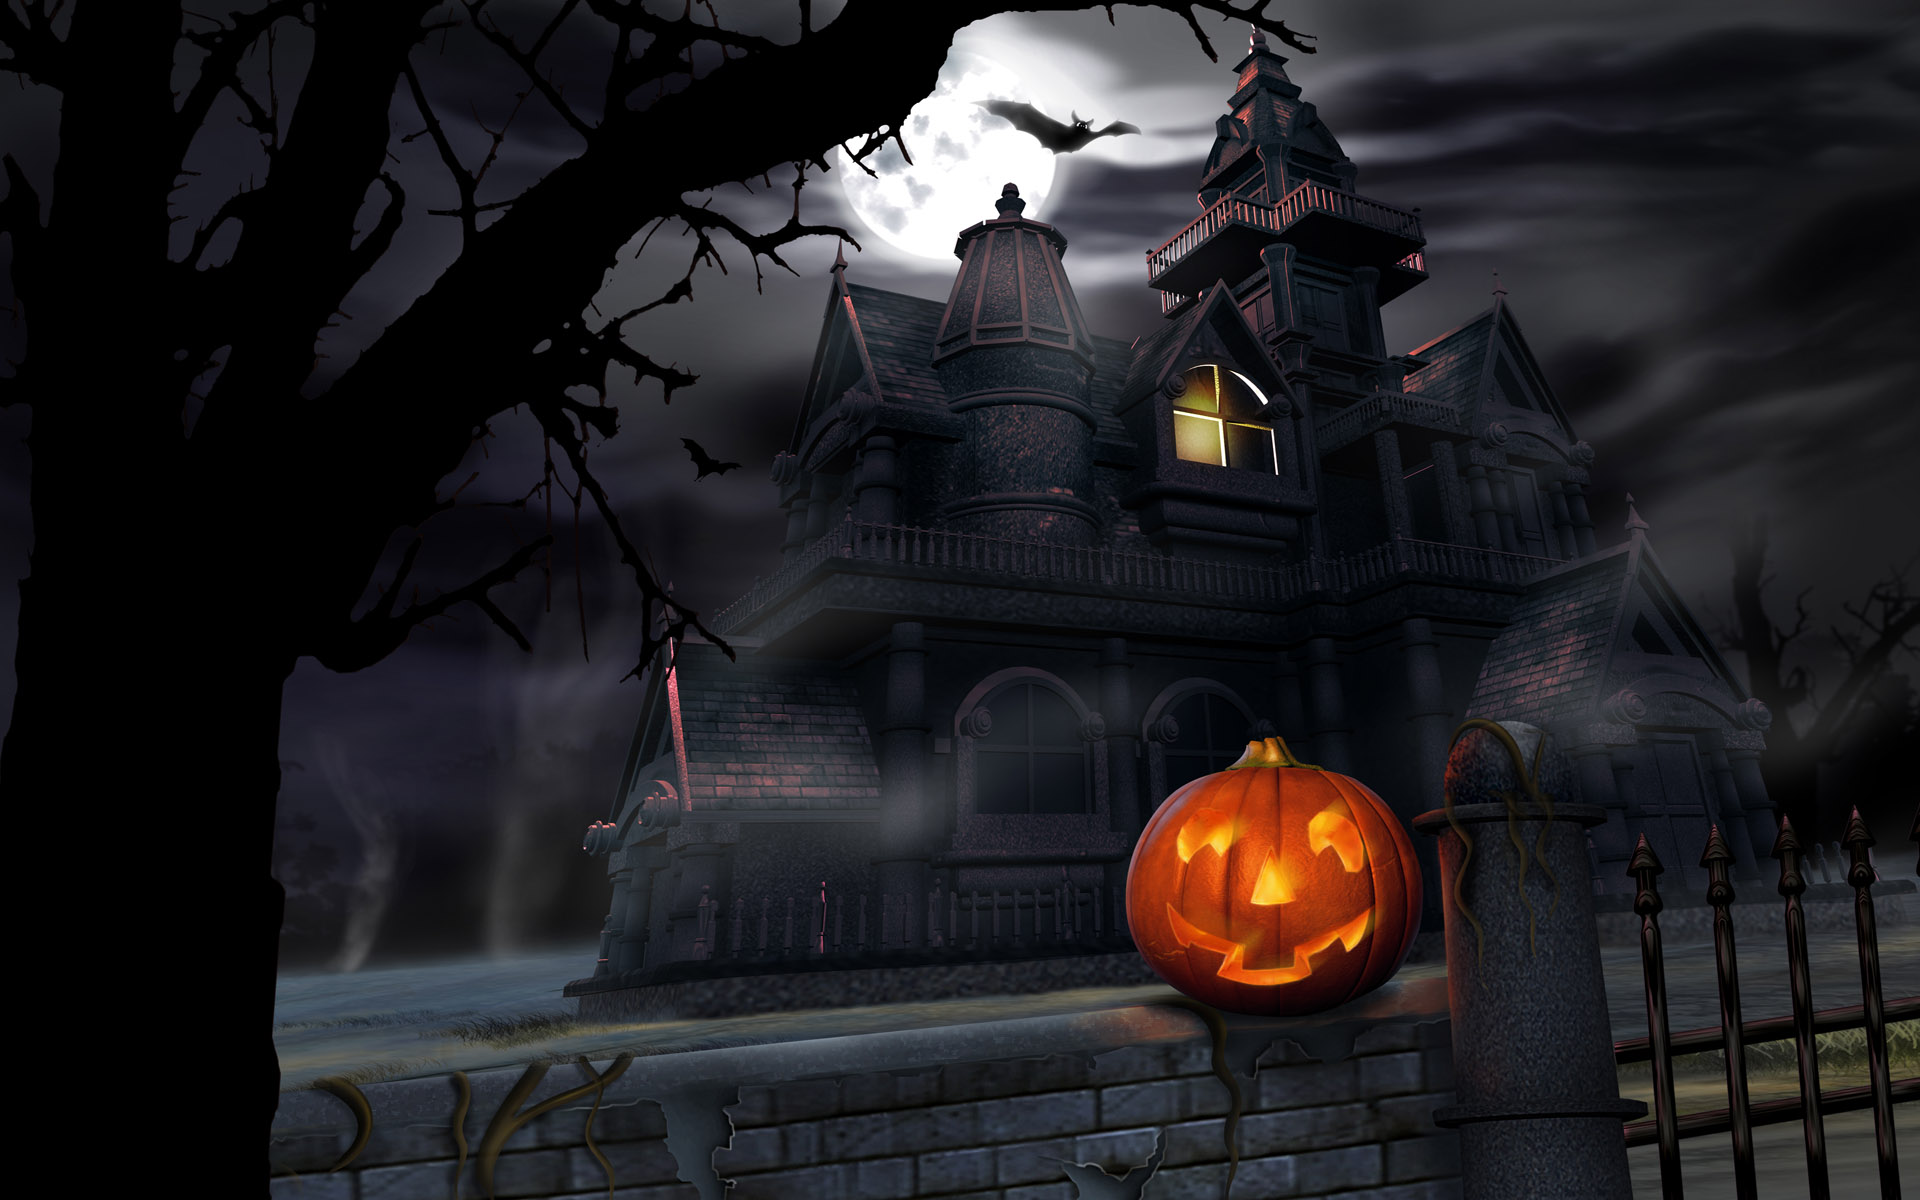 Free Download Scary Halloween Backgrounds  PixelsTalk Scary Halloween  HD Wallpapers  Pumpkins, Witches, Spider Web 1920x1200